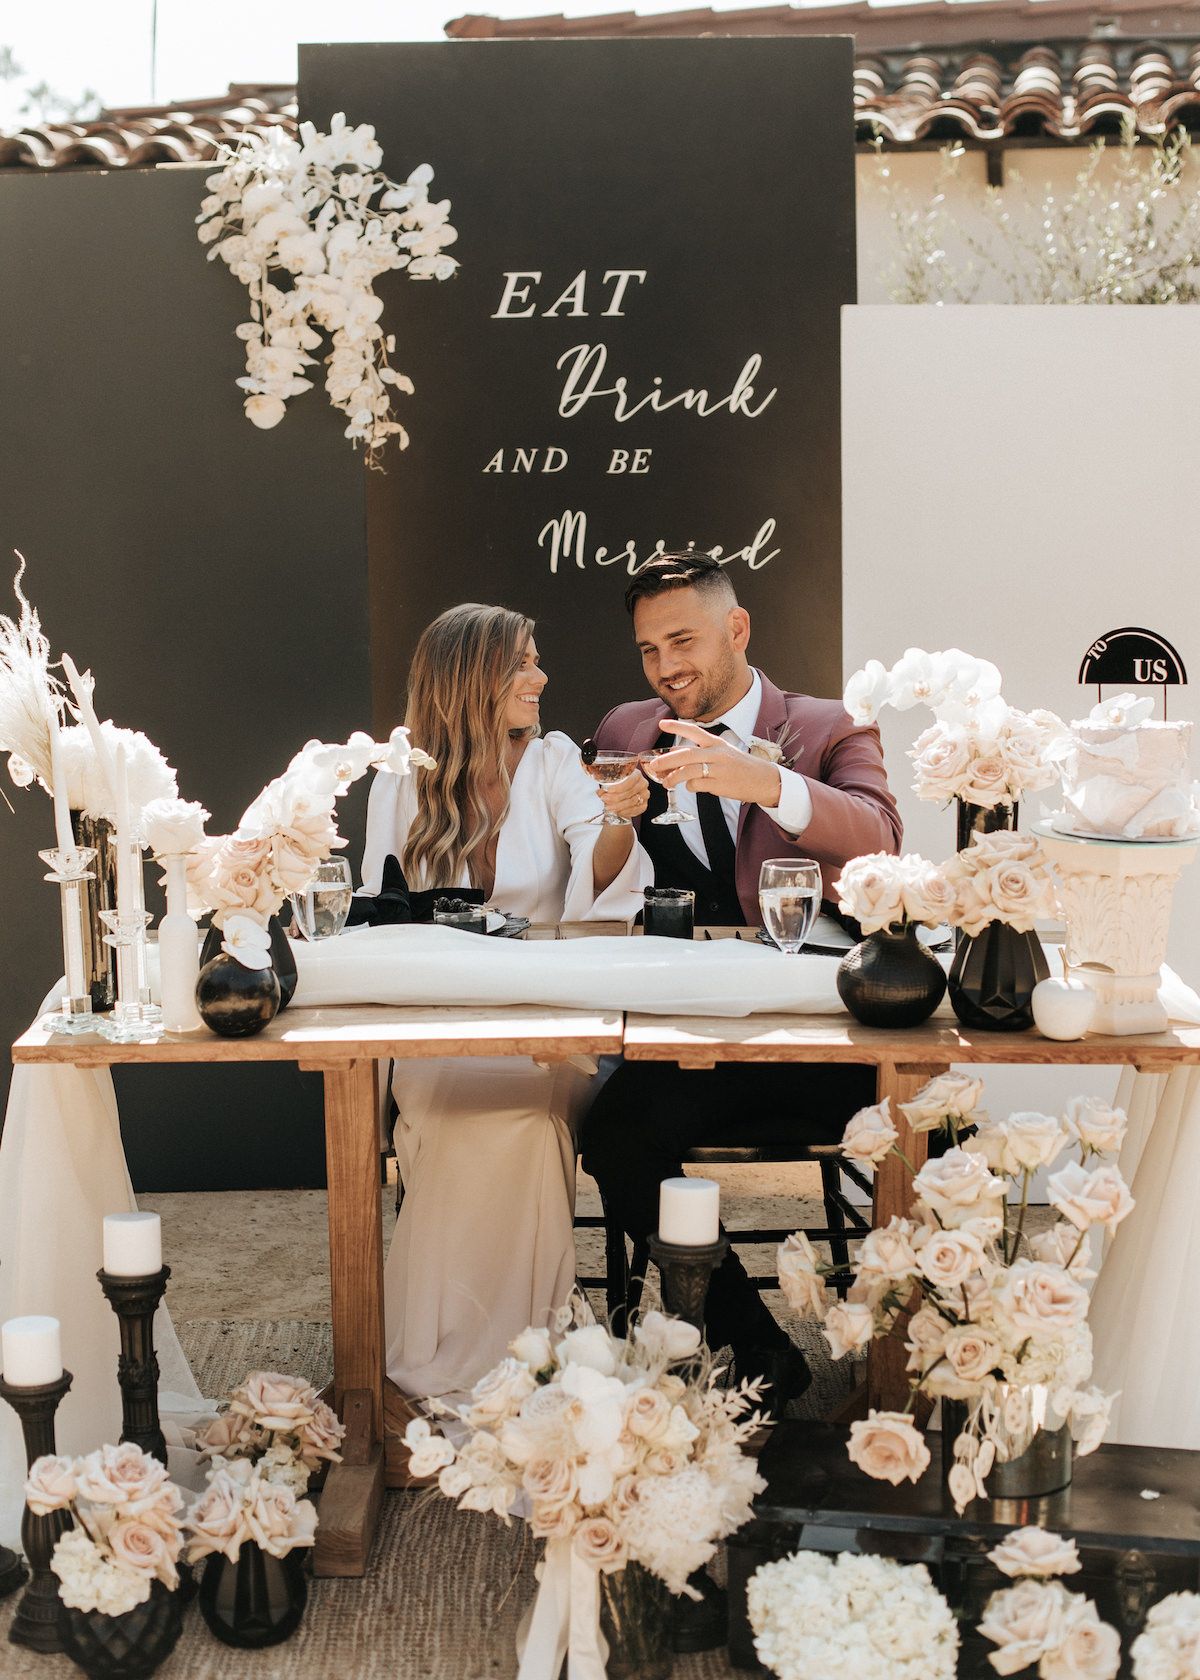 Black and white wedding sweetheart table decor - Sydney Bliss Photography